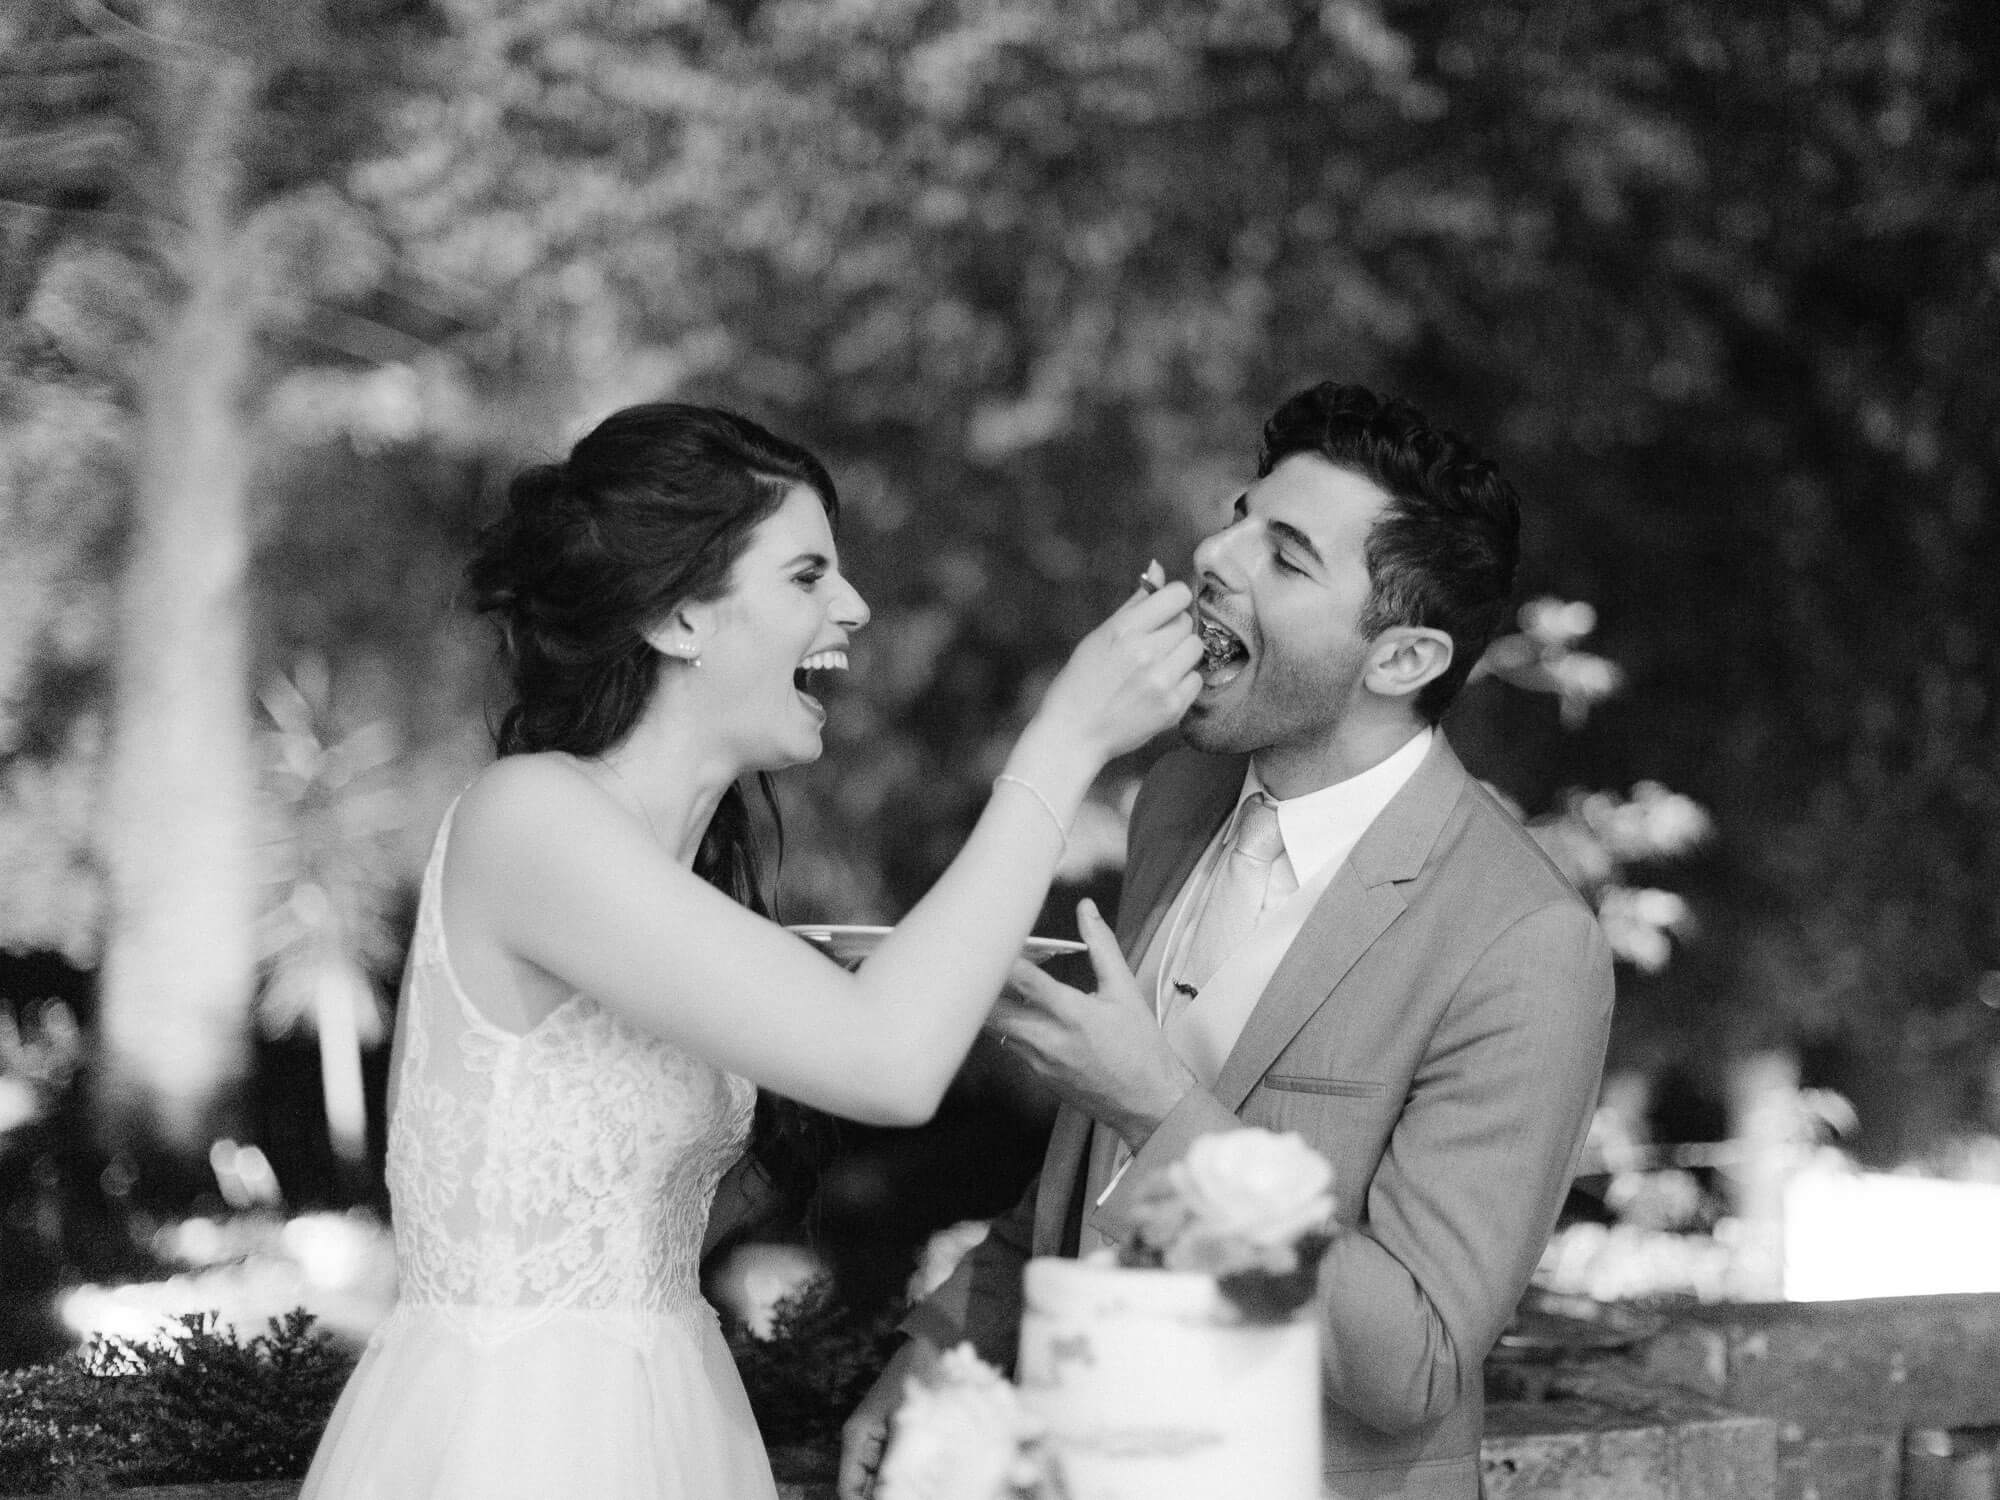 cake cutting ceremony fun moment by Portugal Wedding Photographer